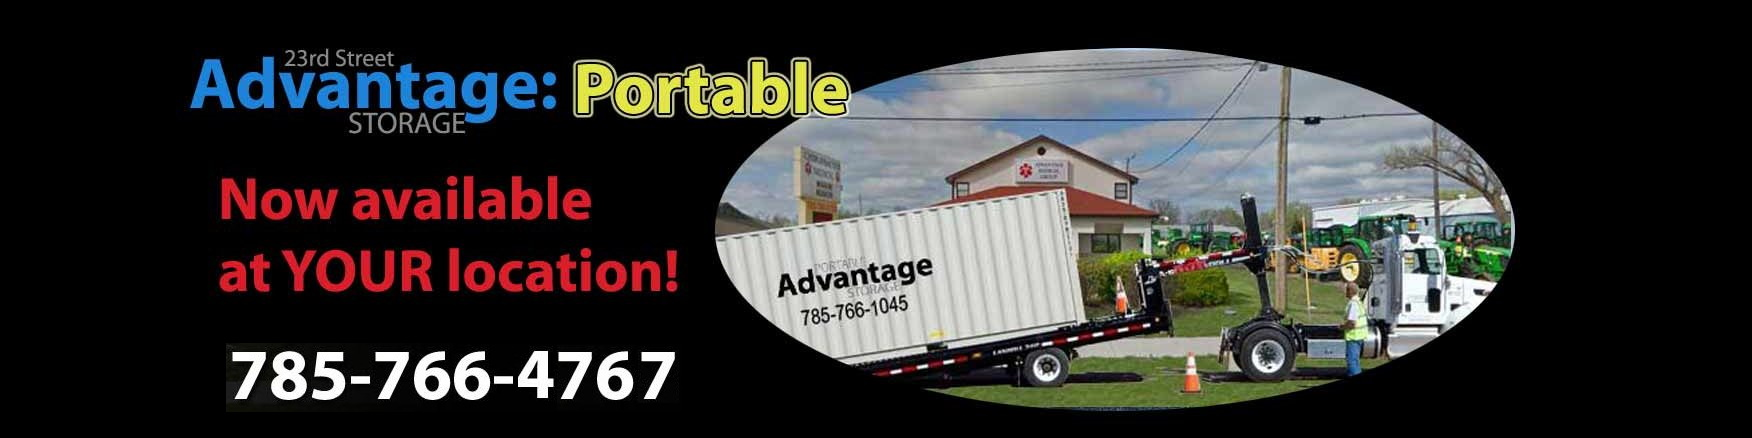 Advantage-Portable Storage Units